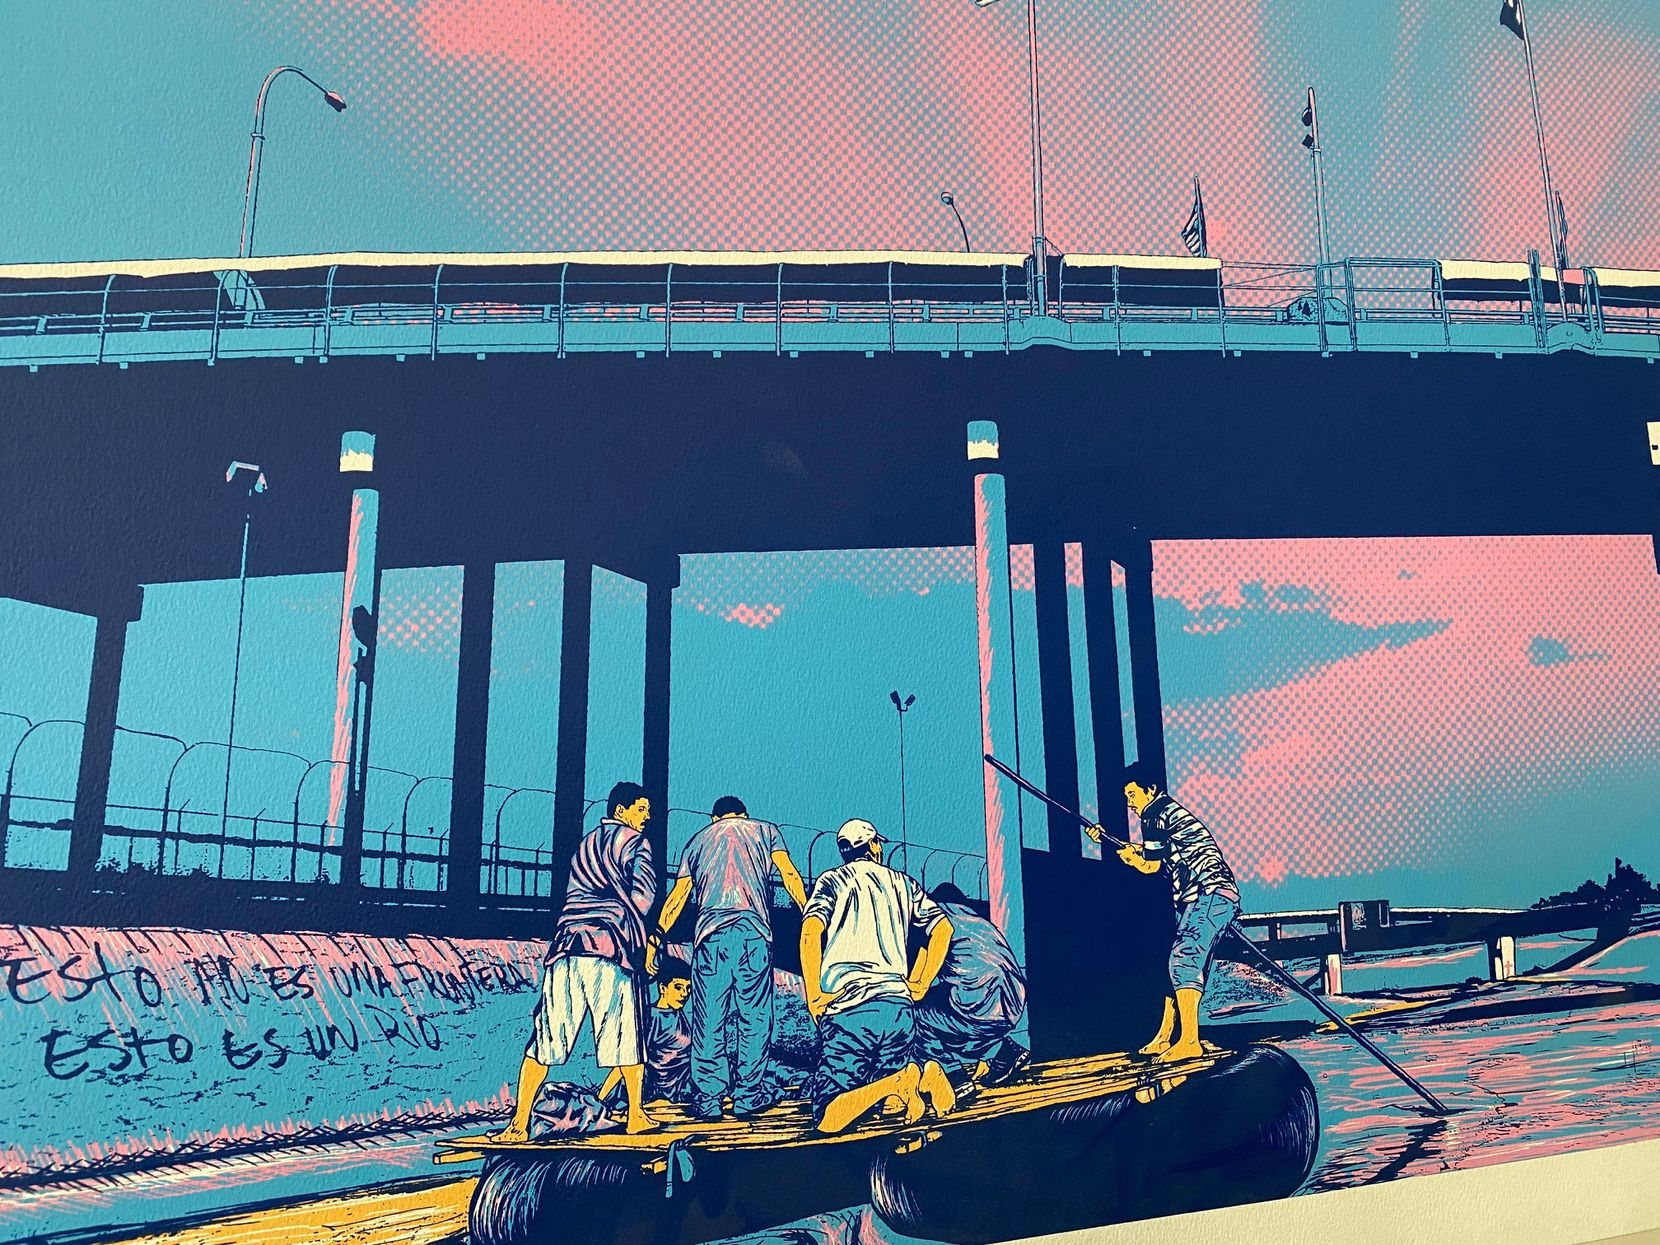 """El Paso muralist Jesus Alvarado, El Cimi, painted this screen print in 2015 to depict life along the border witht the Santa Fe International Bridge in the background. The caption in Spanish reads: """"This is not a border. This is just a river."""""""